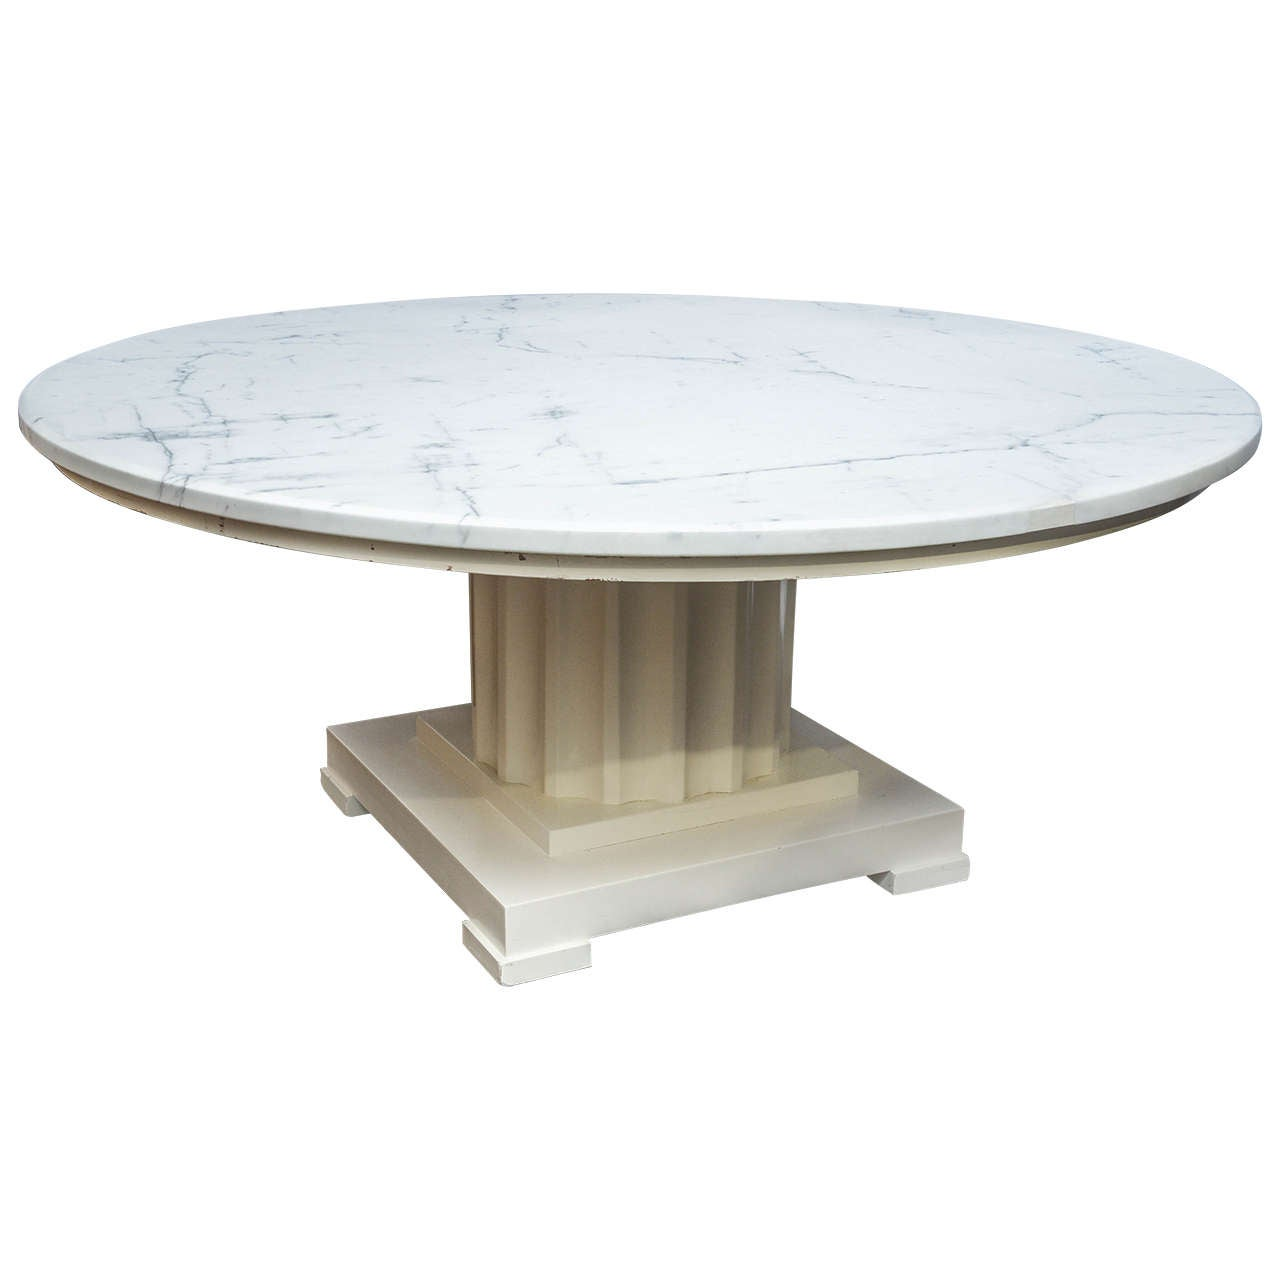 Vintage Neoclassic Round Marble Coffee Table At 1stdibs